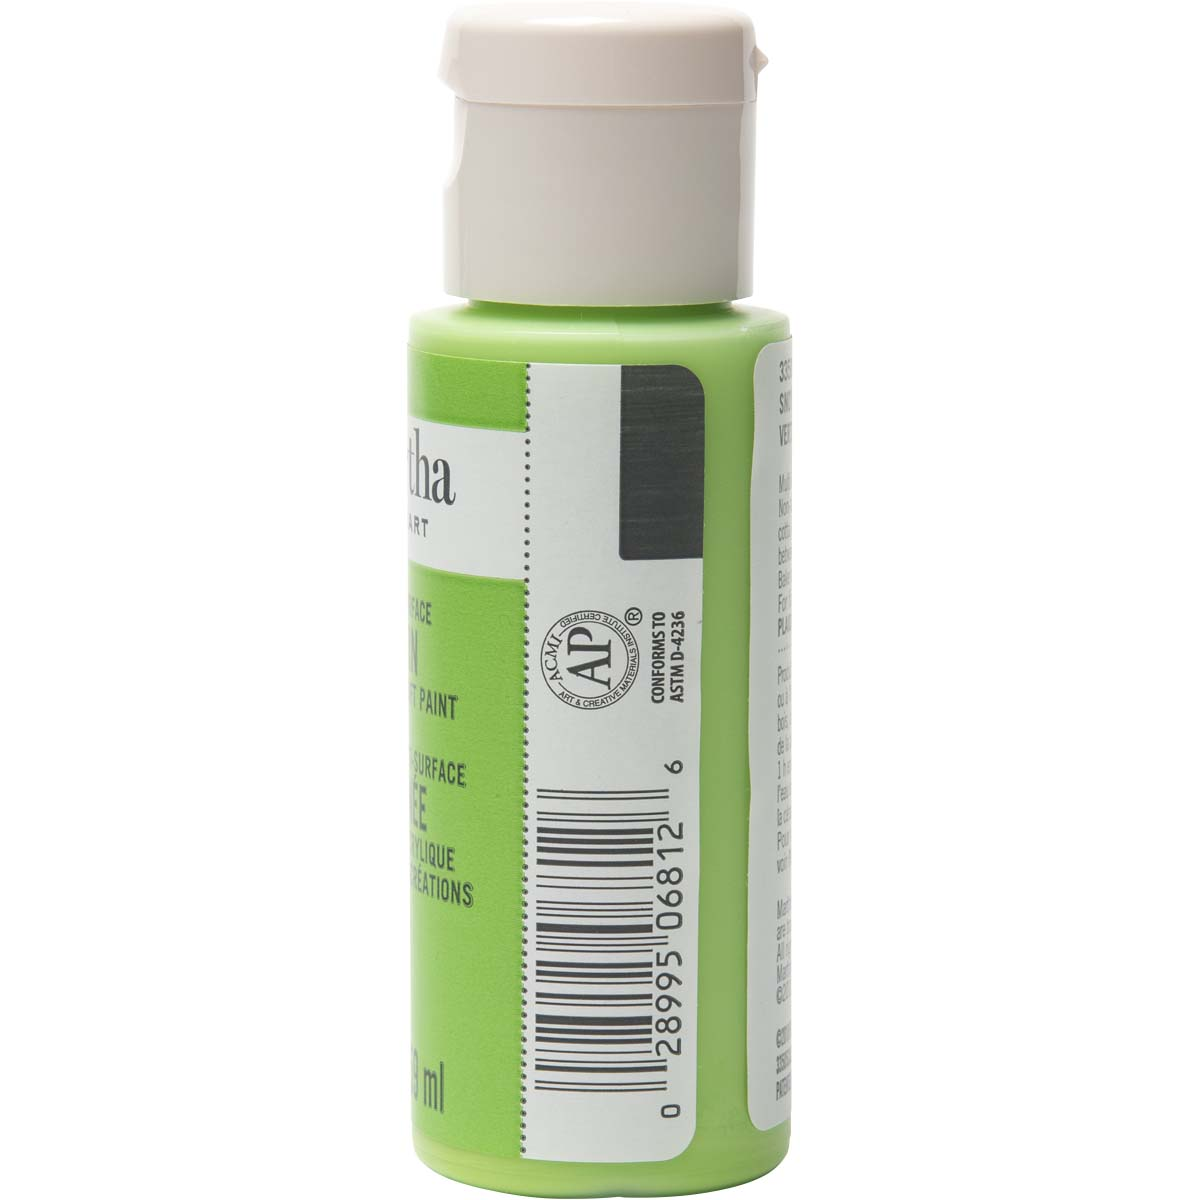 Martha Stewart ® Multi-Surface Satin Acrylic Craft Paint - Snow Pea, 2 oz.